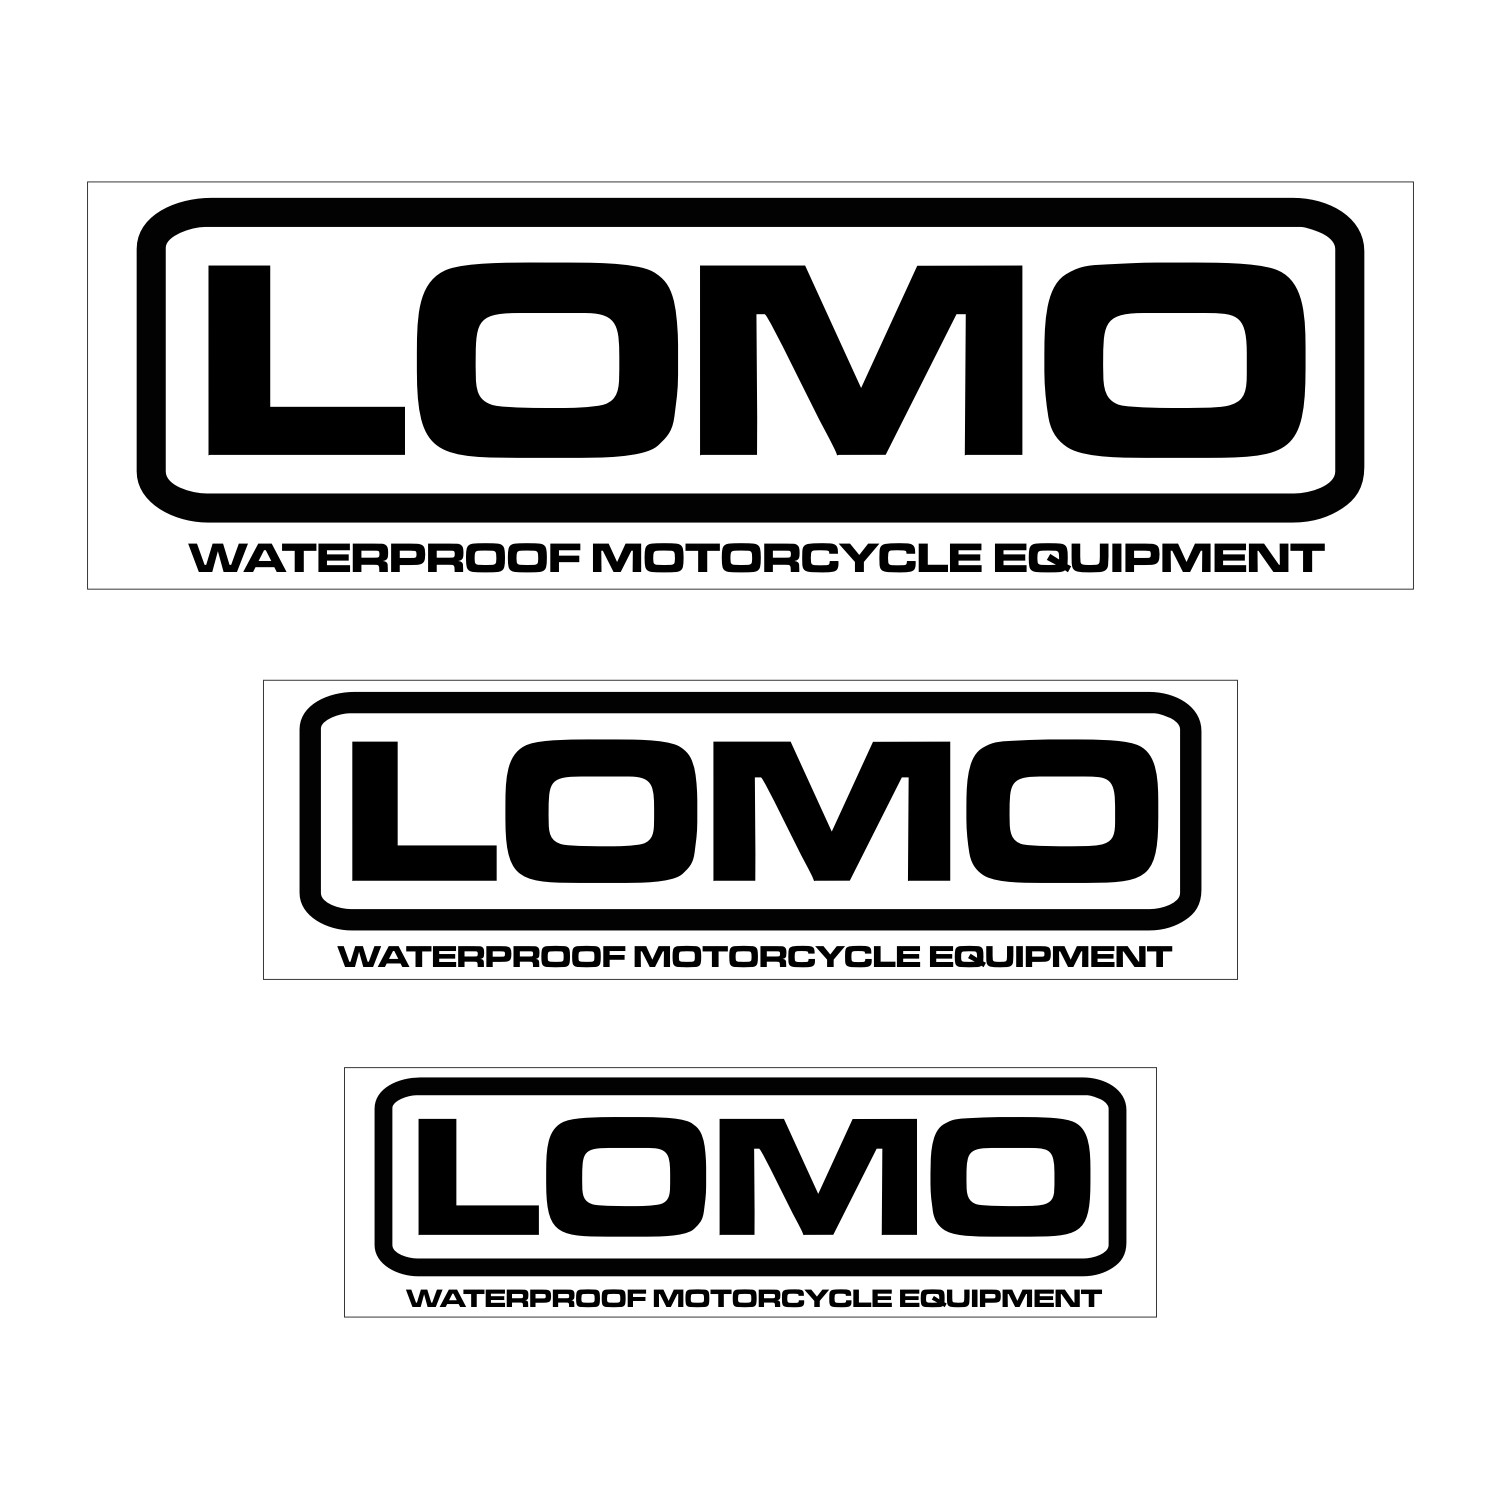 Lomo motorcycle stickers pack of 6